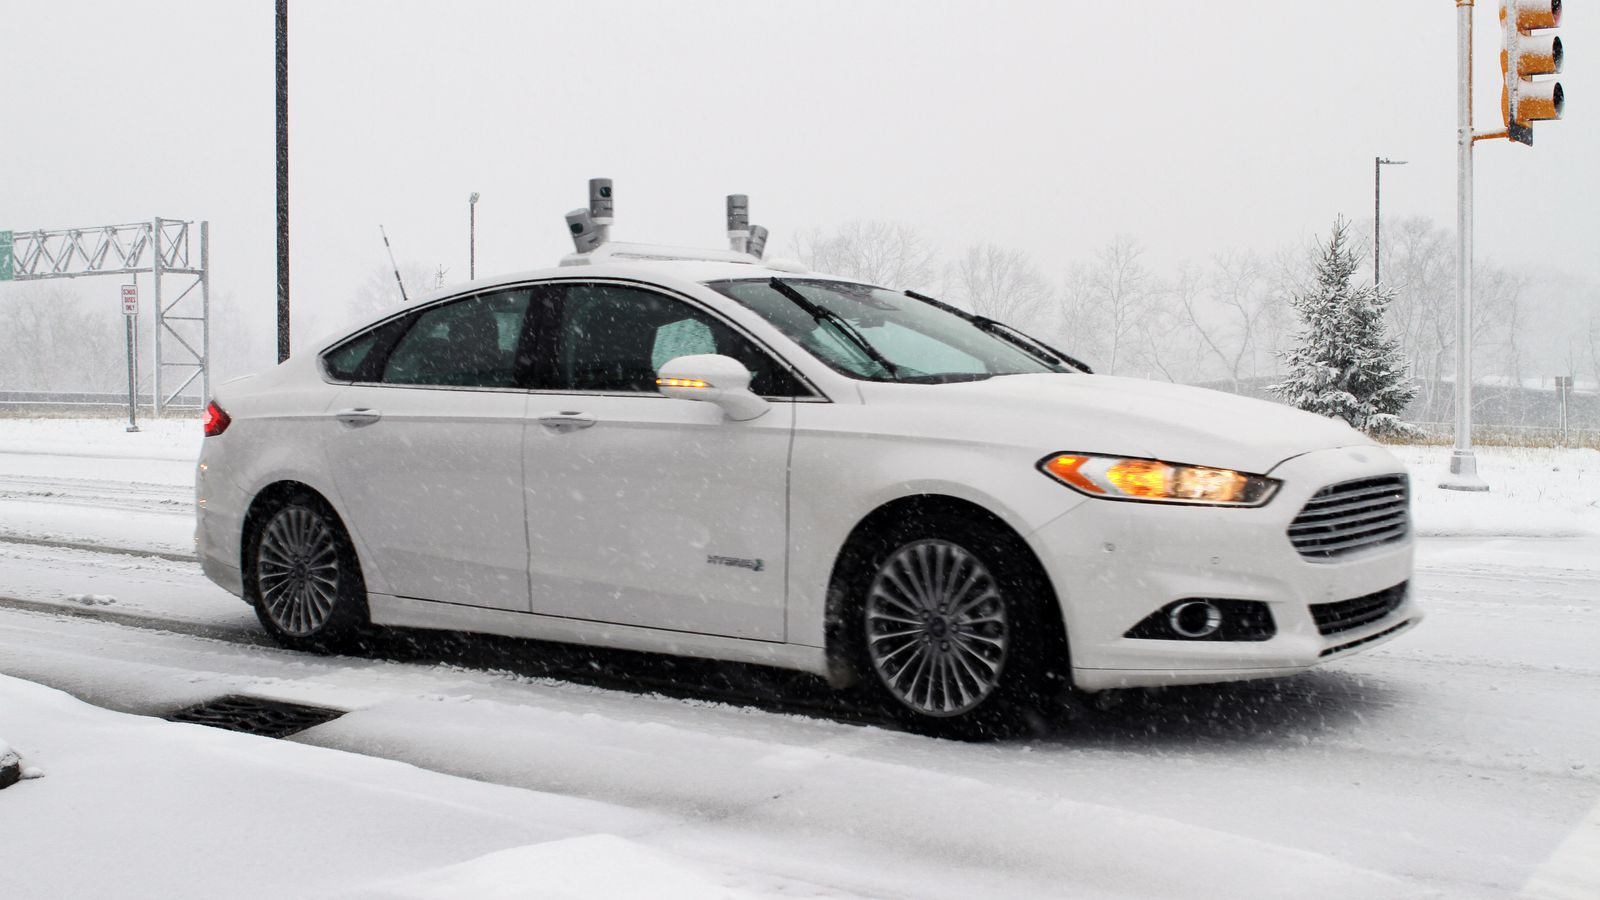 Ford is testing self-driving cars in the snow, which is a really ...